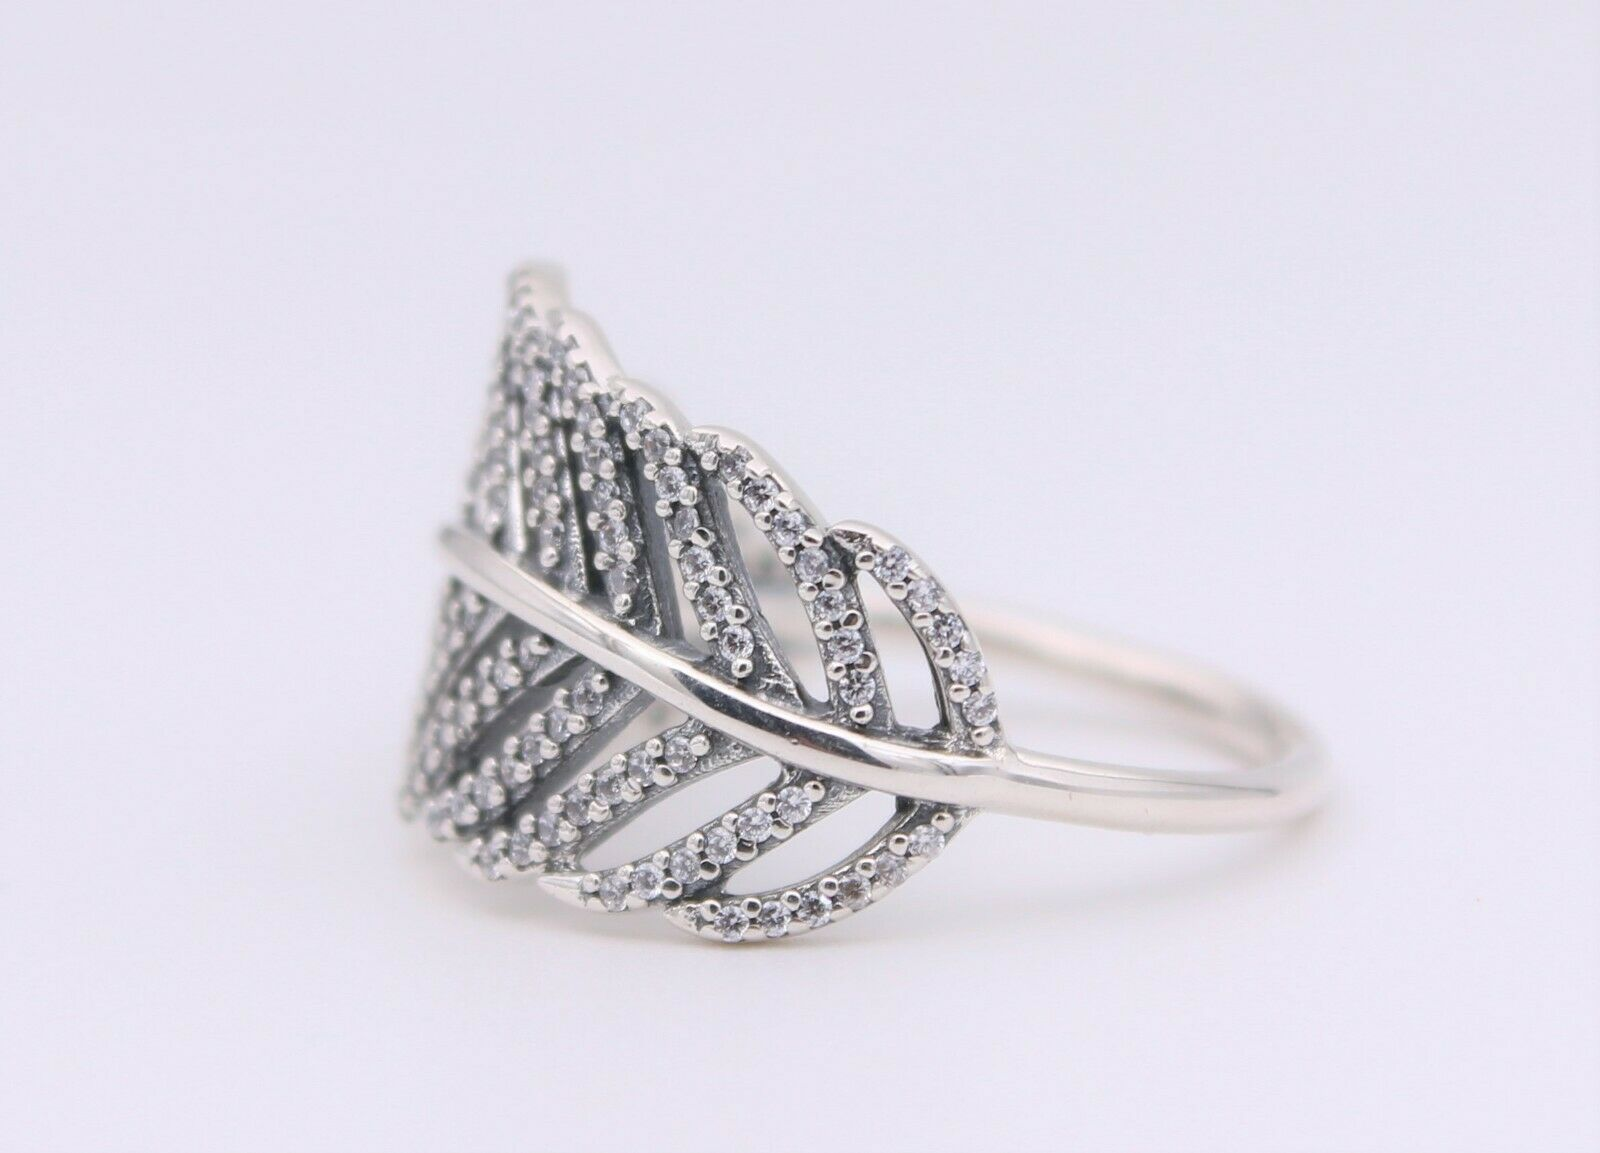 2013 Fall Release Sterling Silver Light As a Feather Pav\u00e9 Ring Stackable Ring Woman Jewelry Size 50,52,54,56,58MM